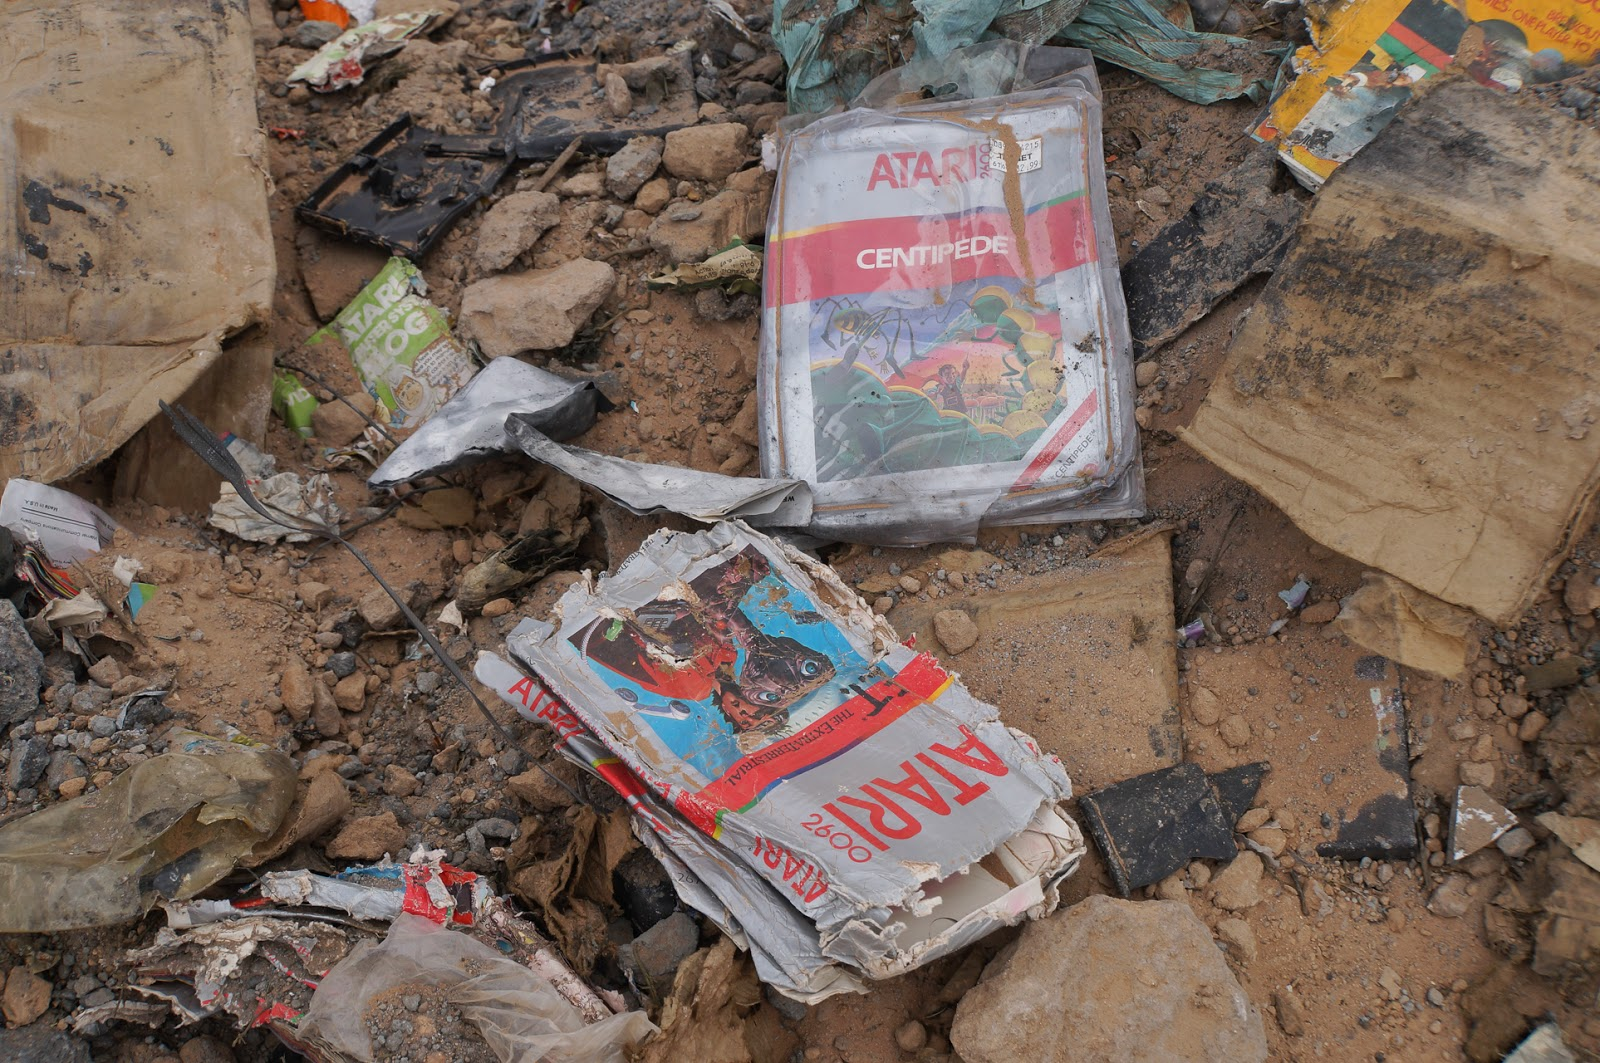 The Aftermath Of The Most Famous Video Game Garbage